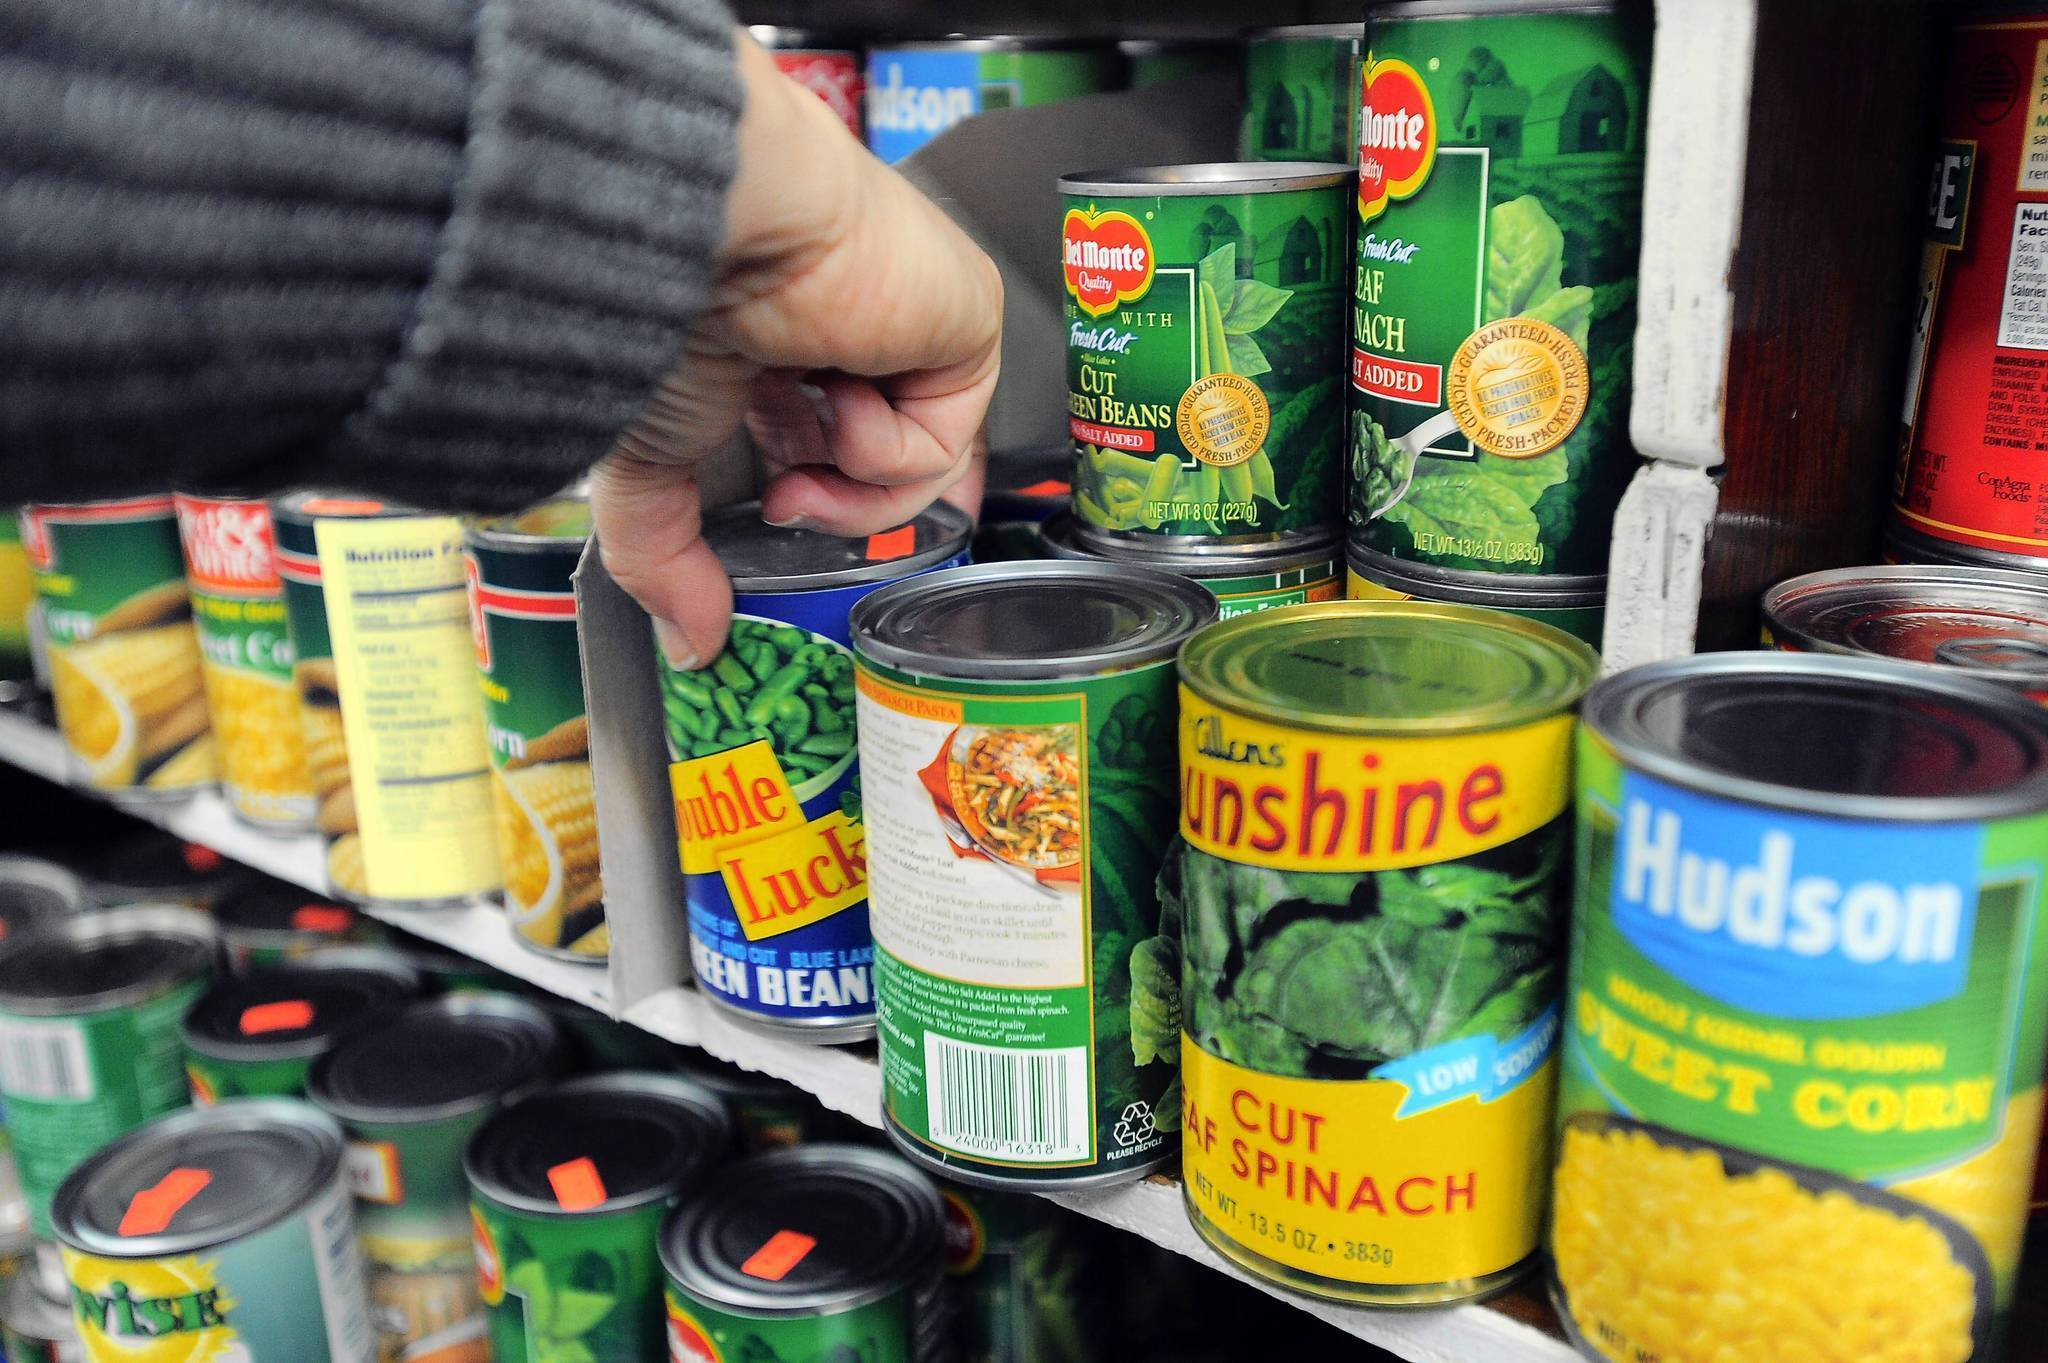 Changes to food stamps could deny benefits to thousands